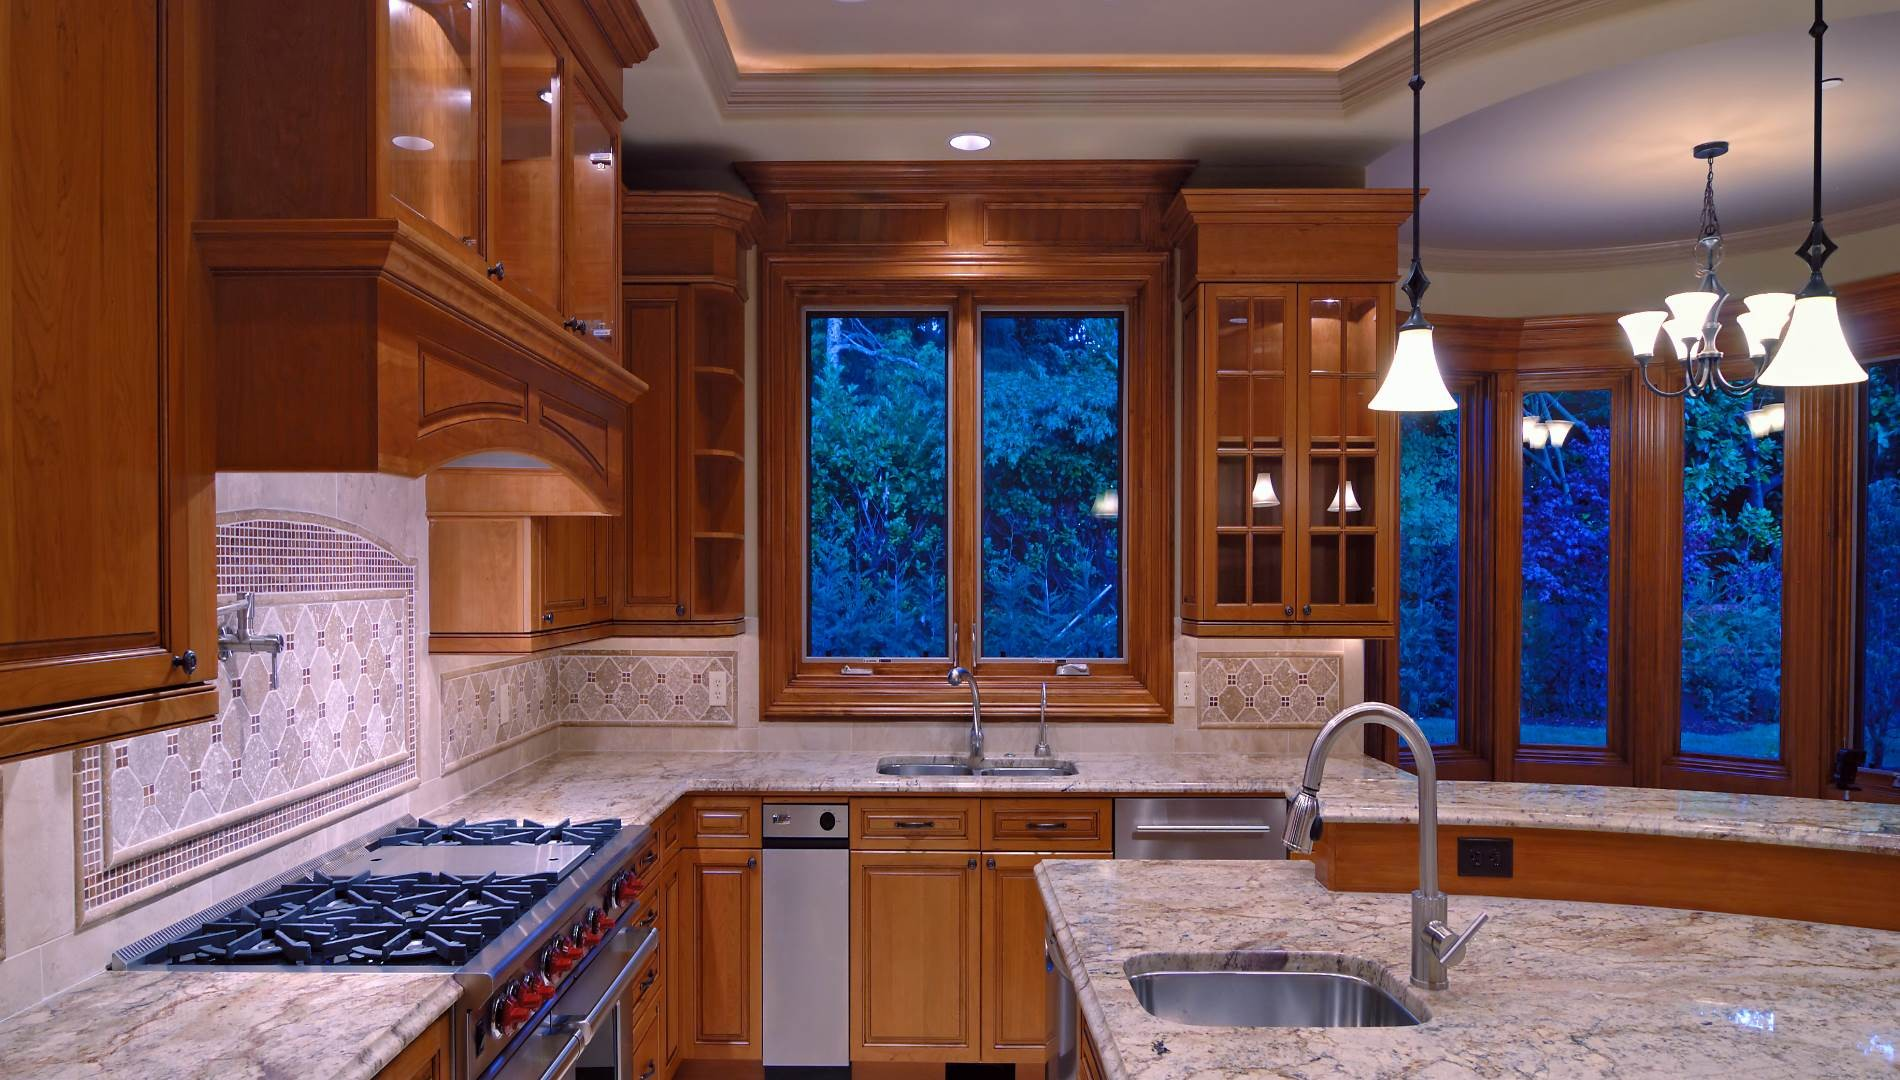 House Cleaning Chesterfield Va